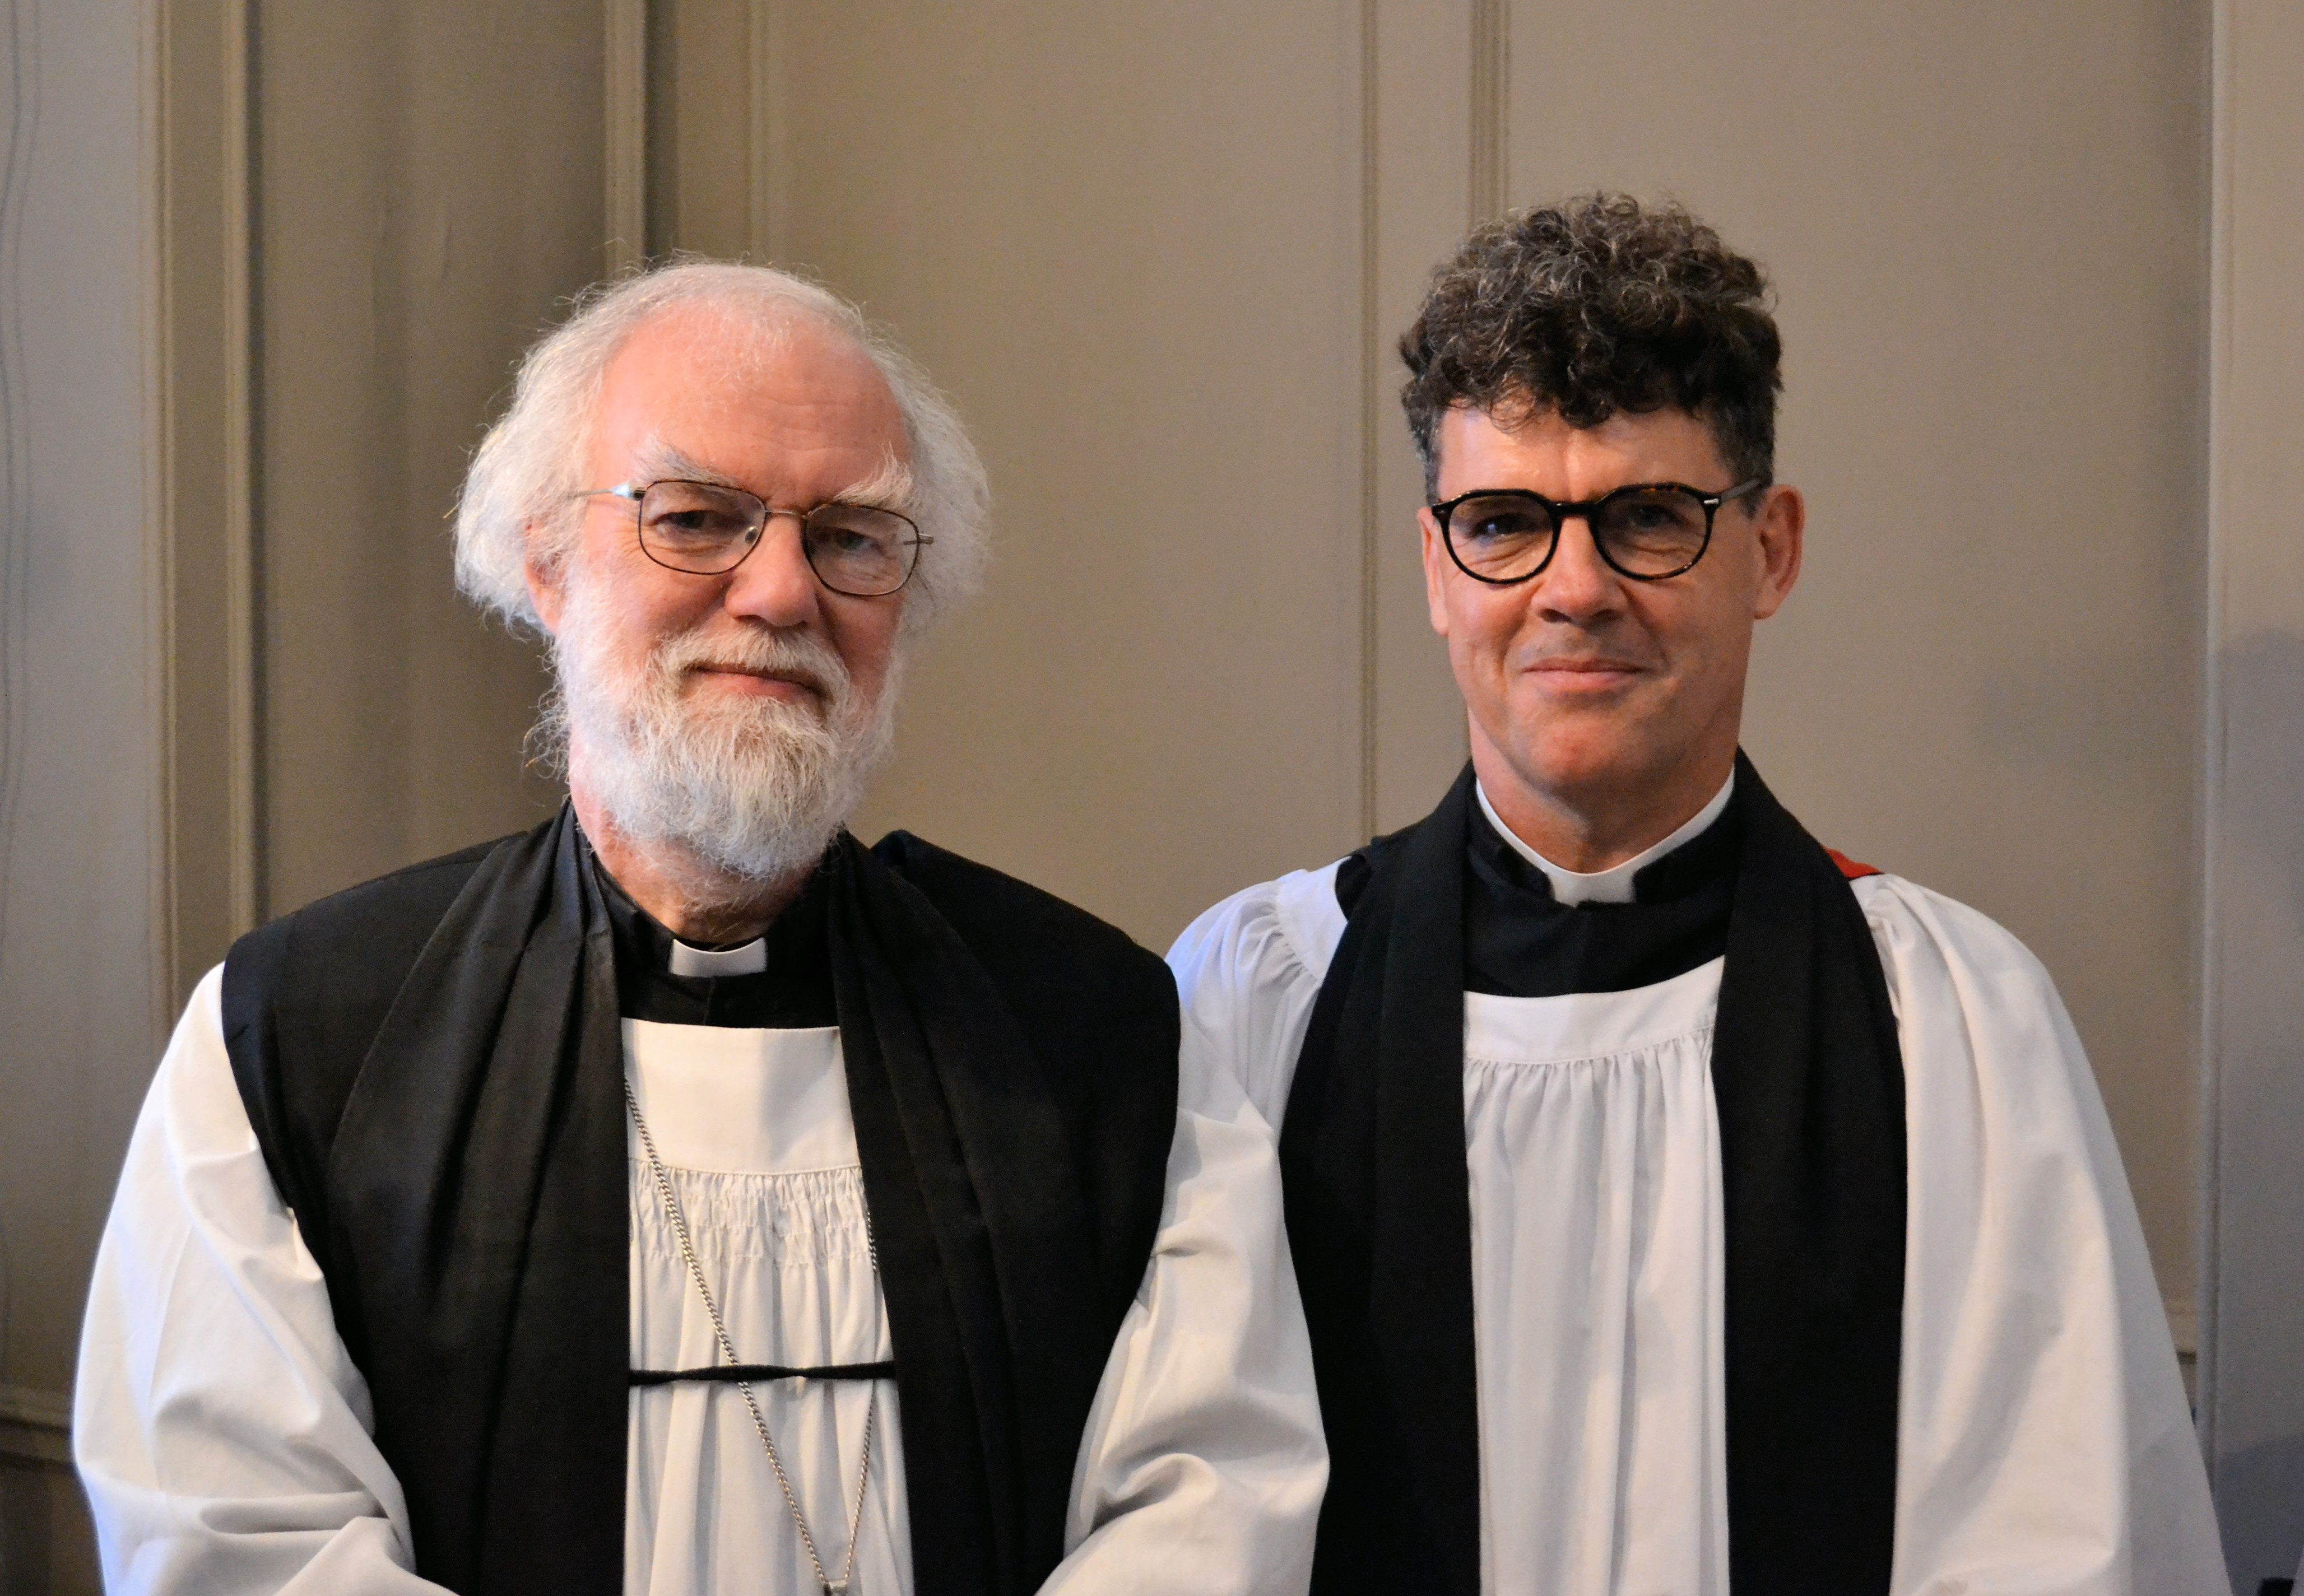 Dr Rowan Williams Preaches At Grocers U2019 Company Election